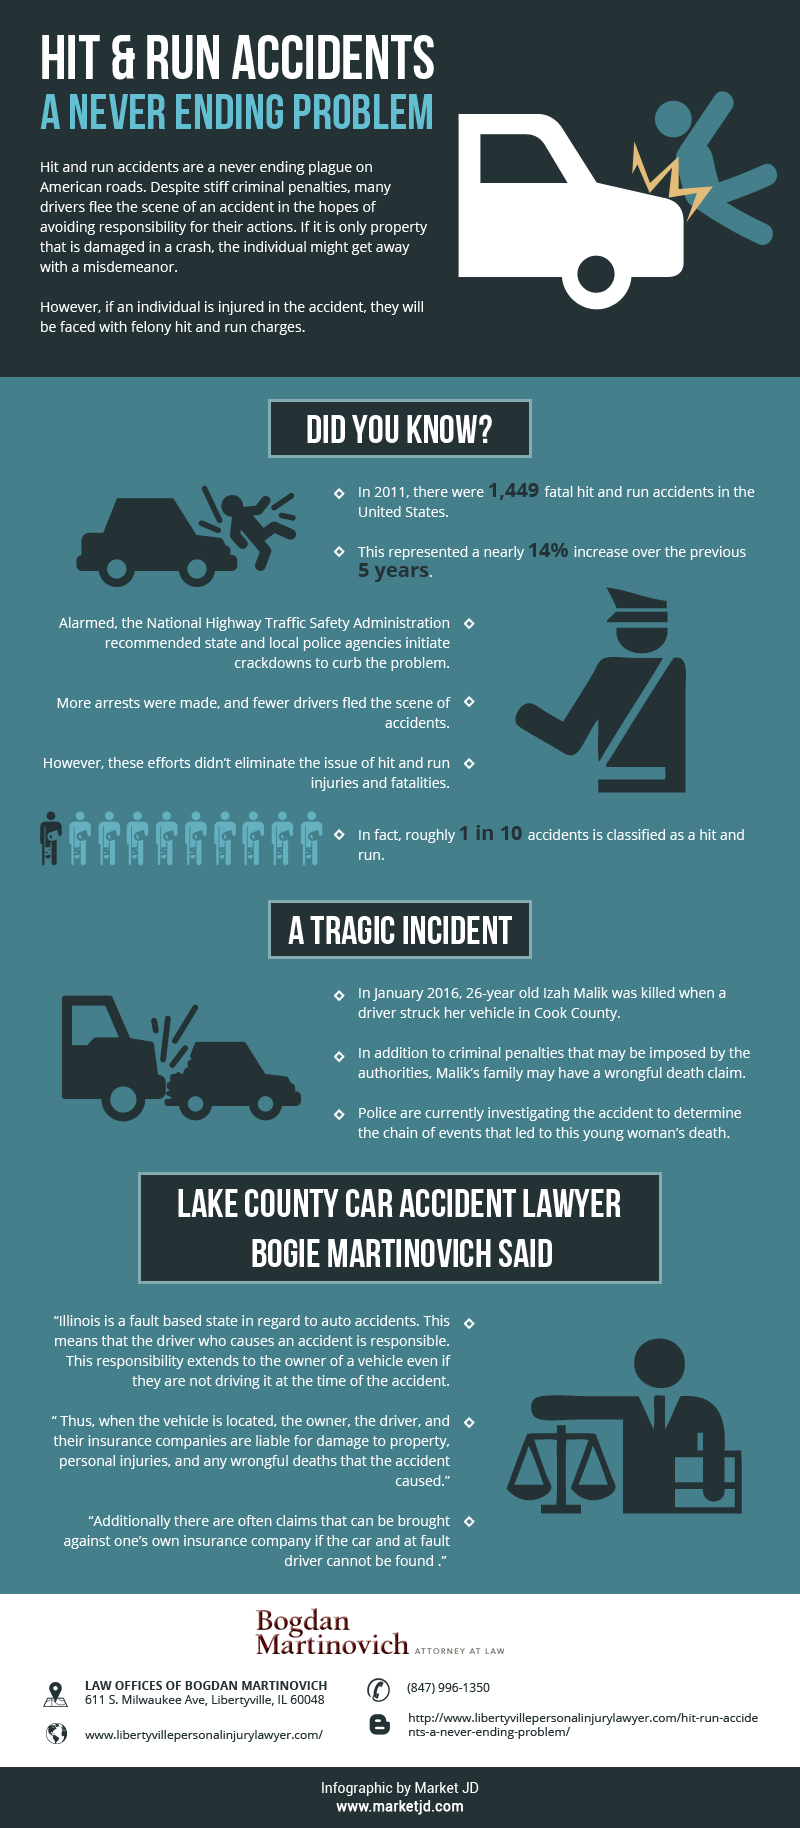 Lake County Car Accident Lawyer